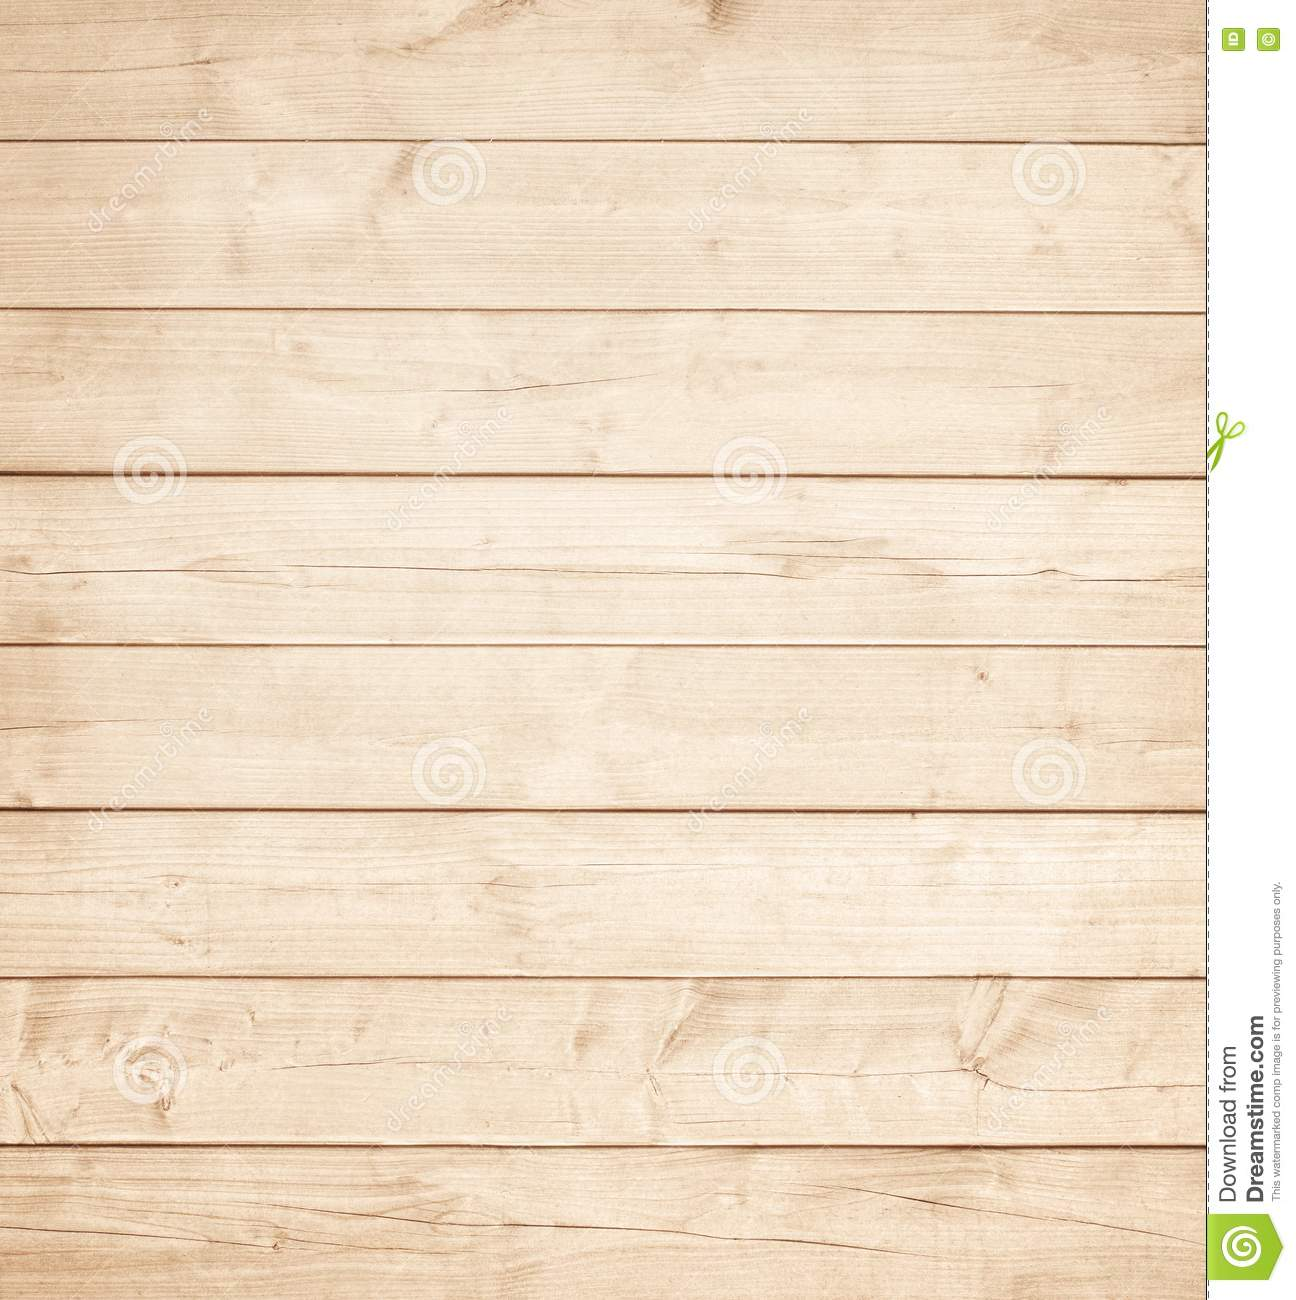 Light brown wooden planks wall table ceiling or floor